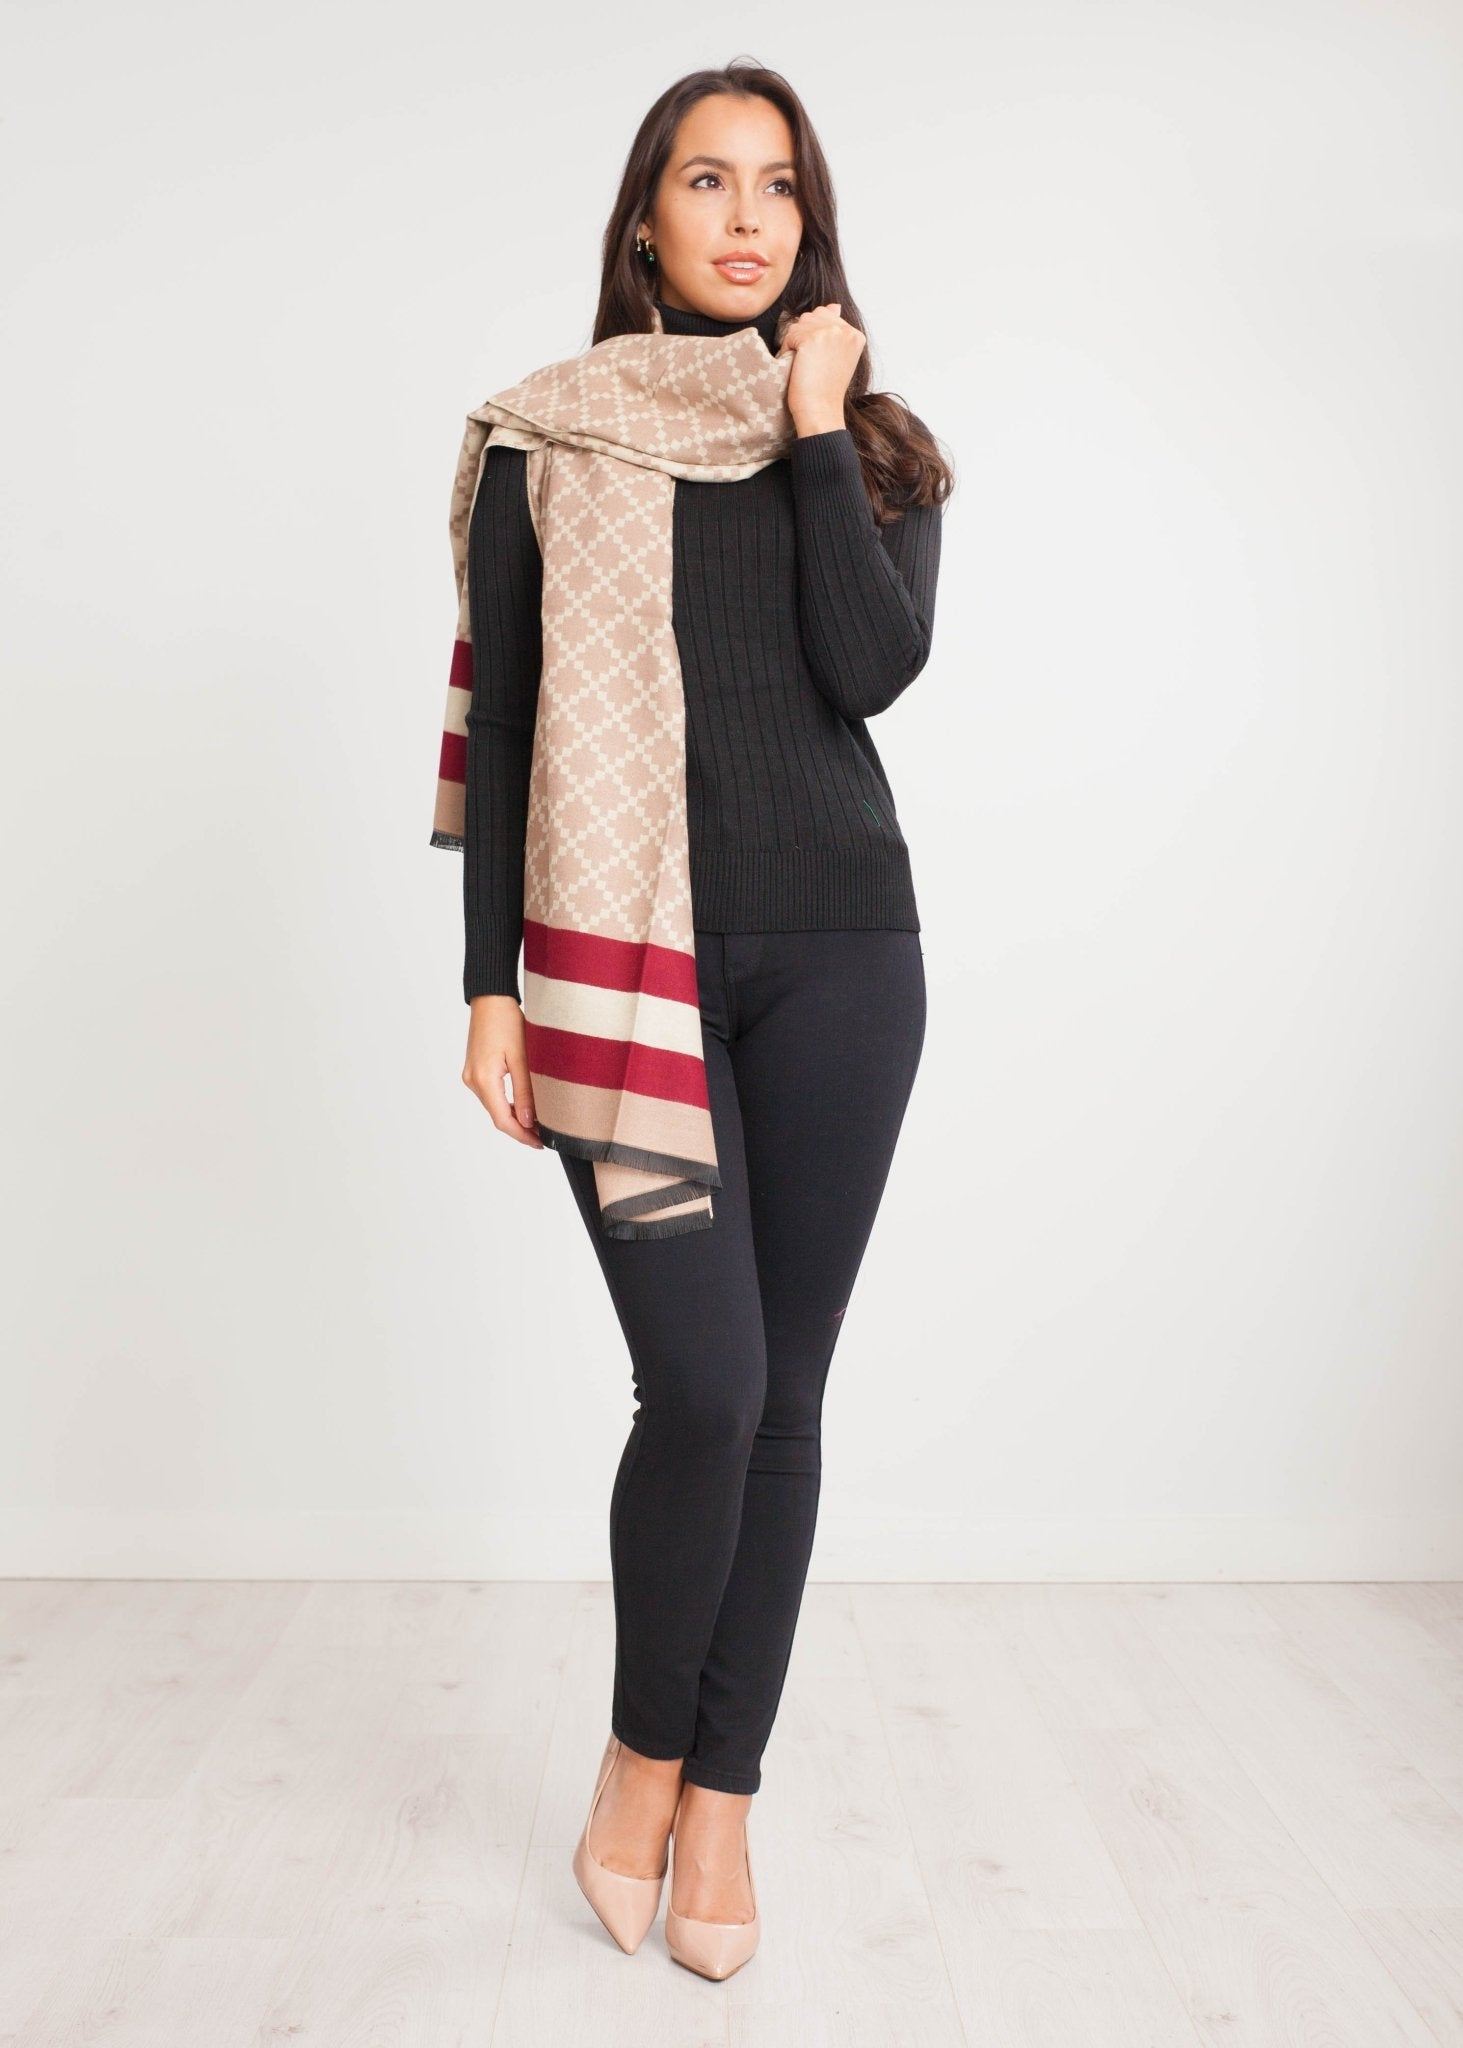 Carly Scarf In Camel And Red - The Walk in Wardrobe